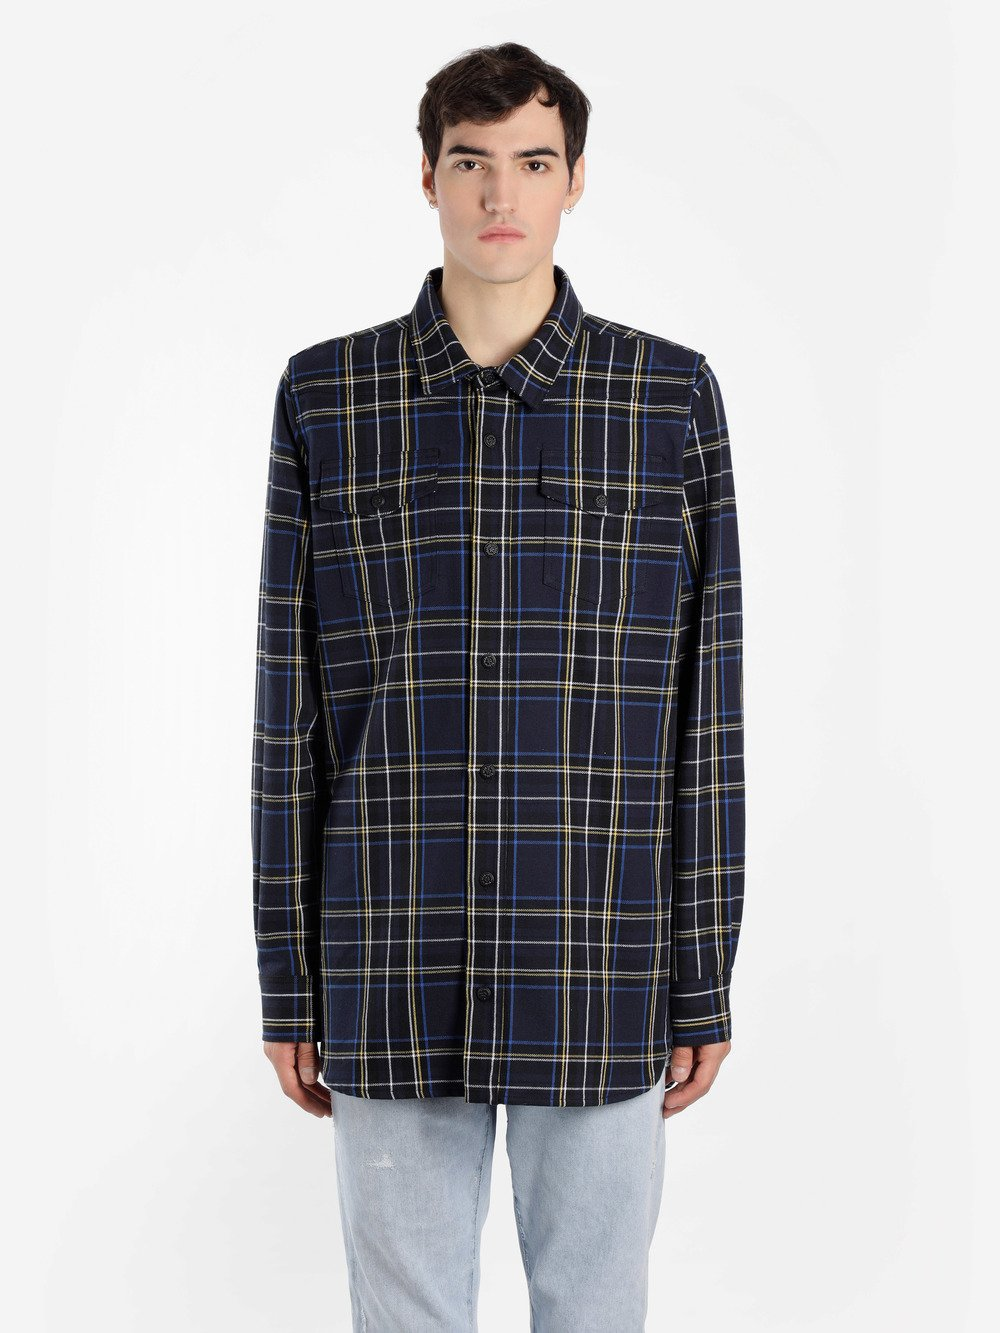 OFF WHITE C/O VIRGIL ABLOH MEN'S BLUE CHECKED SHIRT WITH ARROWS